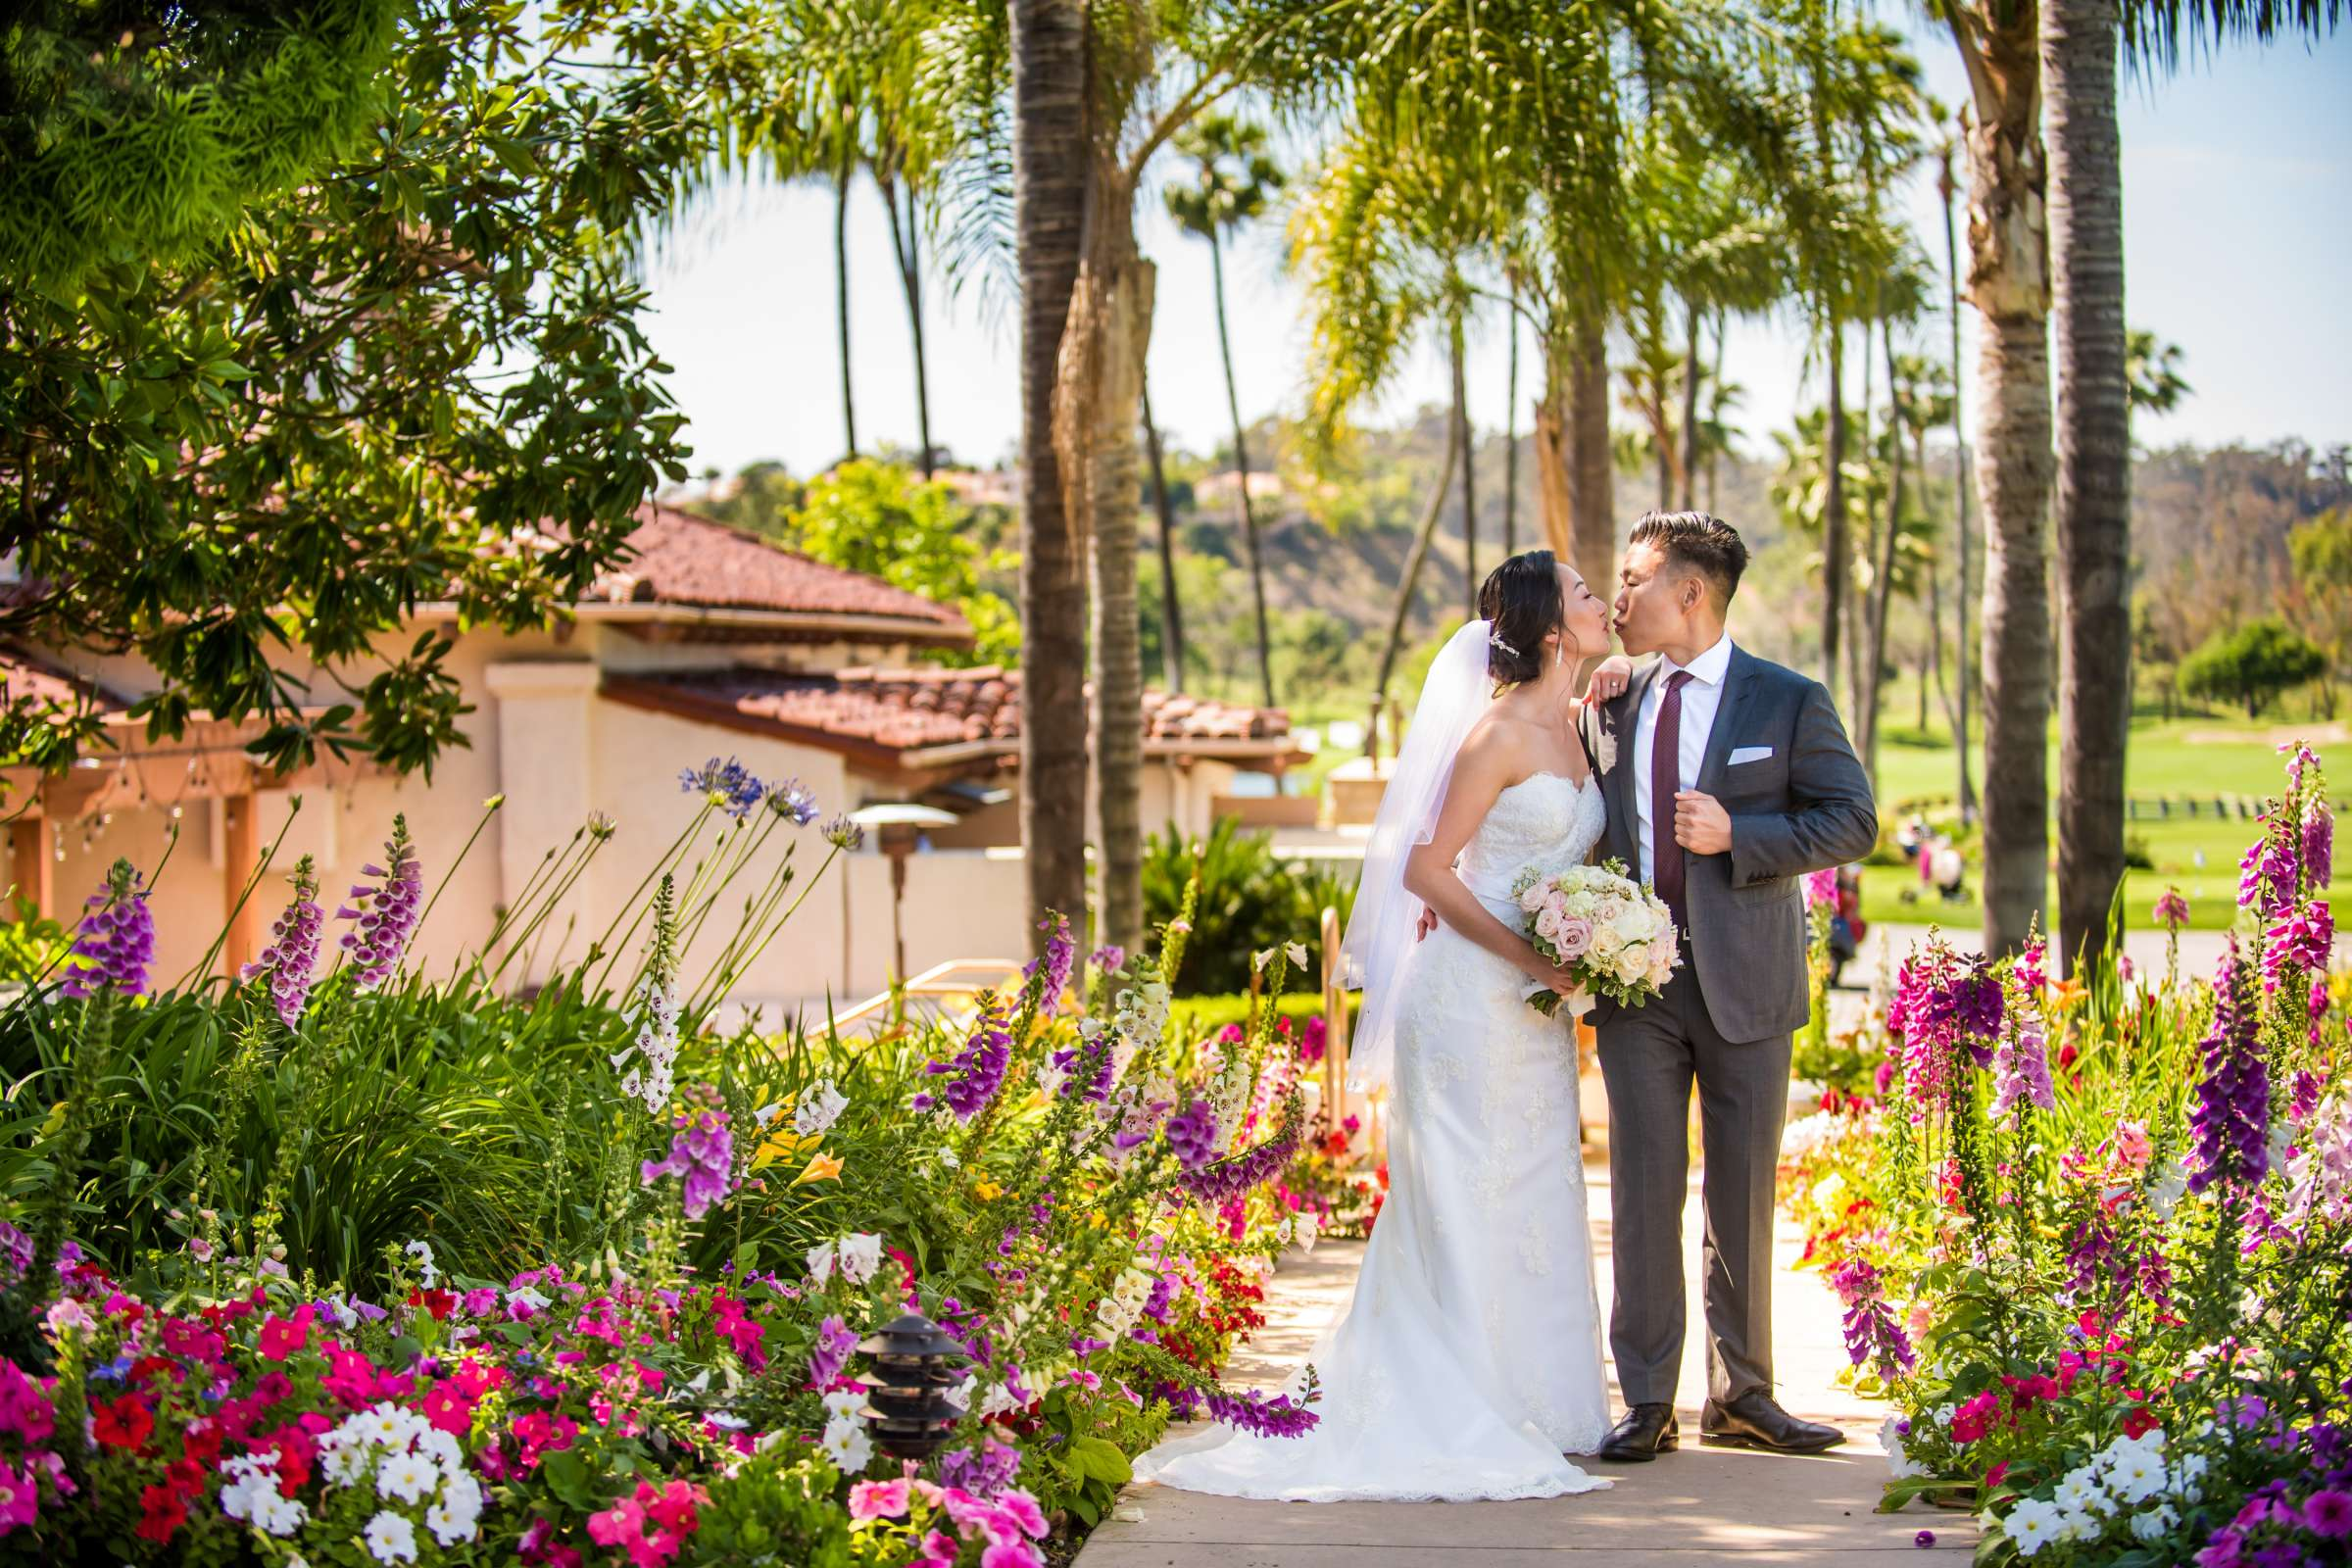 Fairbanks Ranch Country Club Wedding, Sarah and Daniel Wedding Photo #2 by True Photography